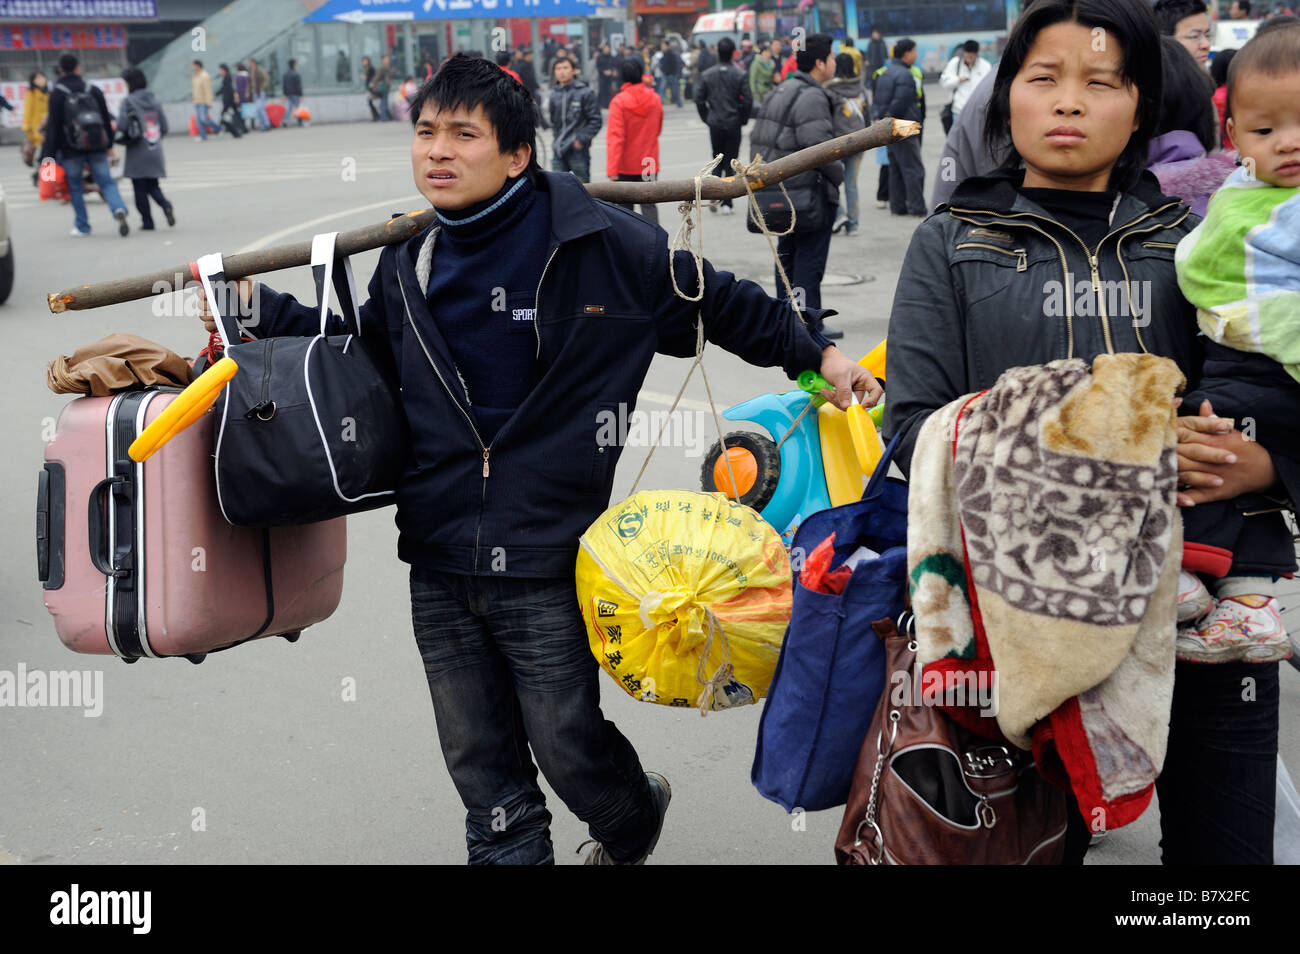 Migrant family members leaving the train station of Nanchang, Jiangxi, China. 05-Feb-2009 - Stock Image